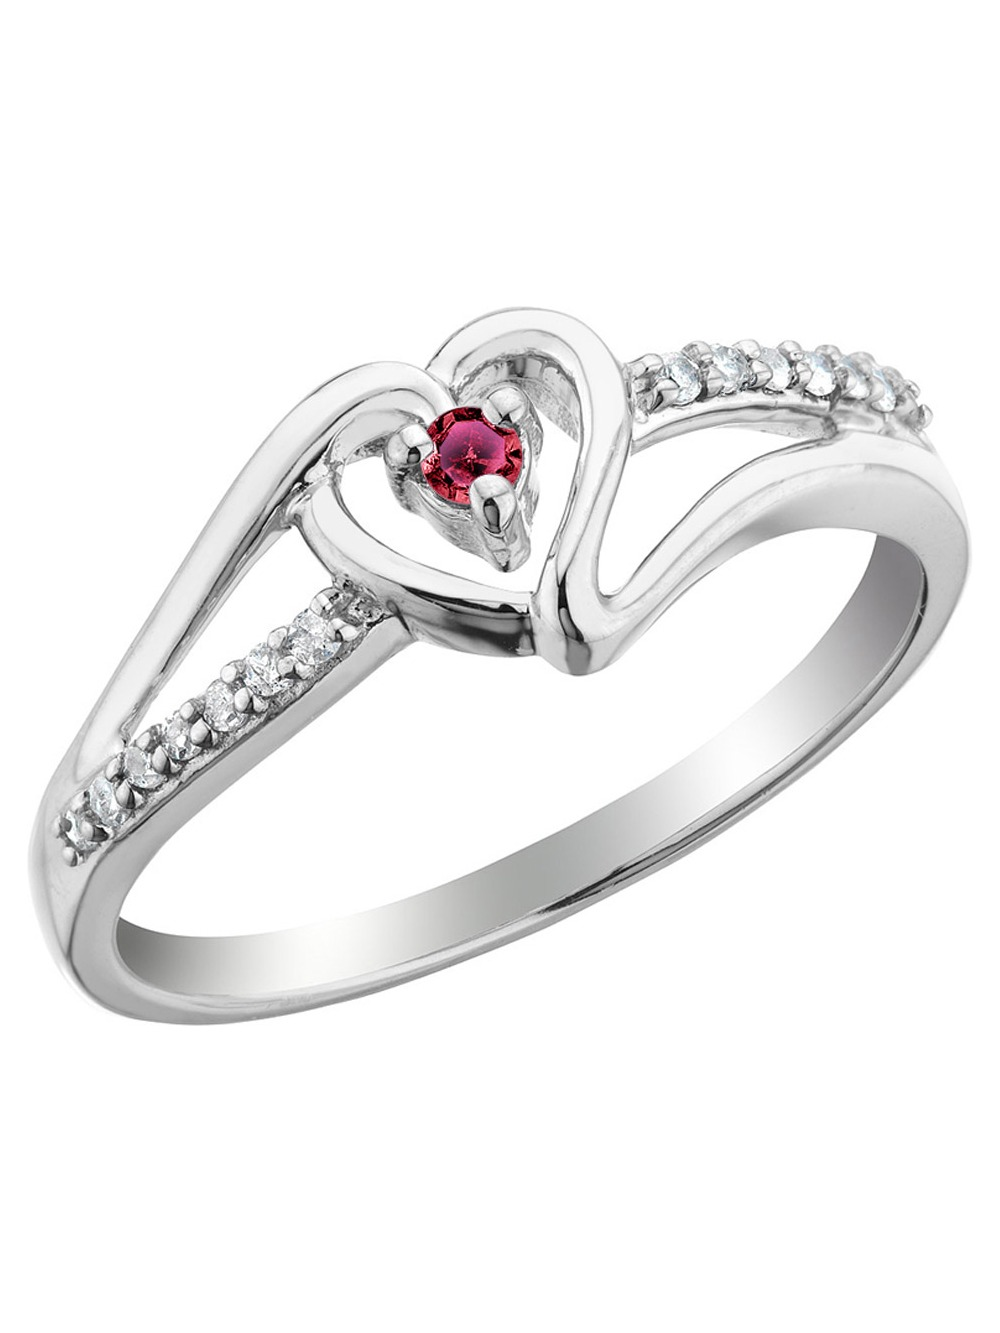 Ruby Heart Promise Ring with Diamonds in Sterling Silver